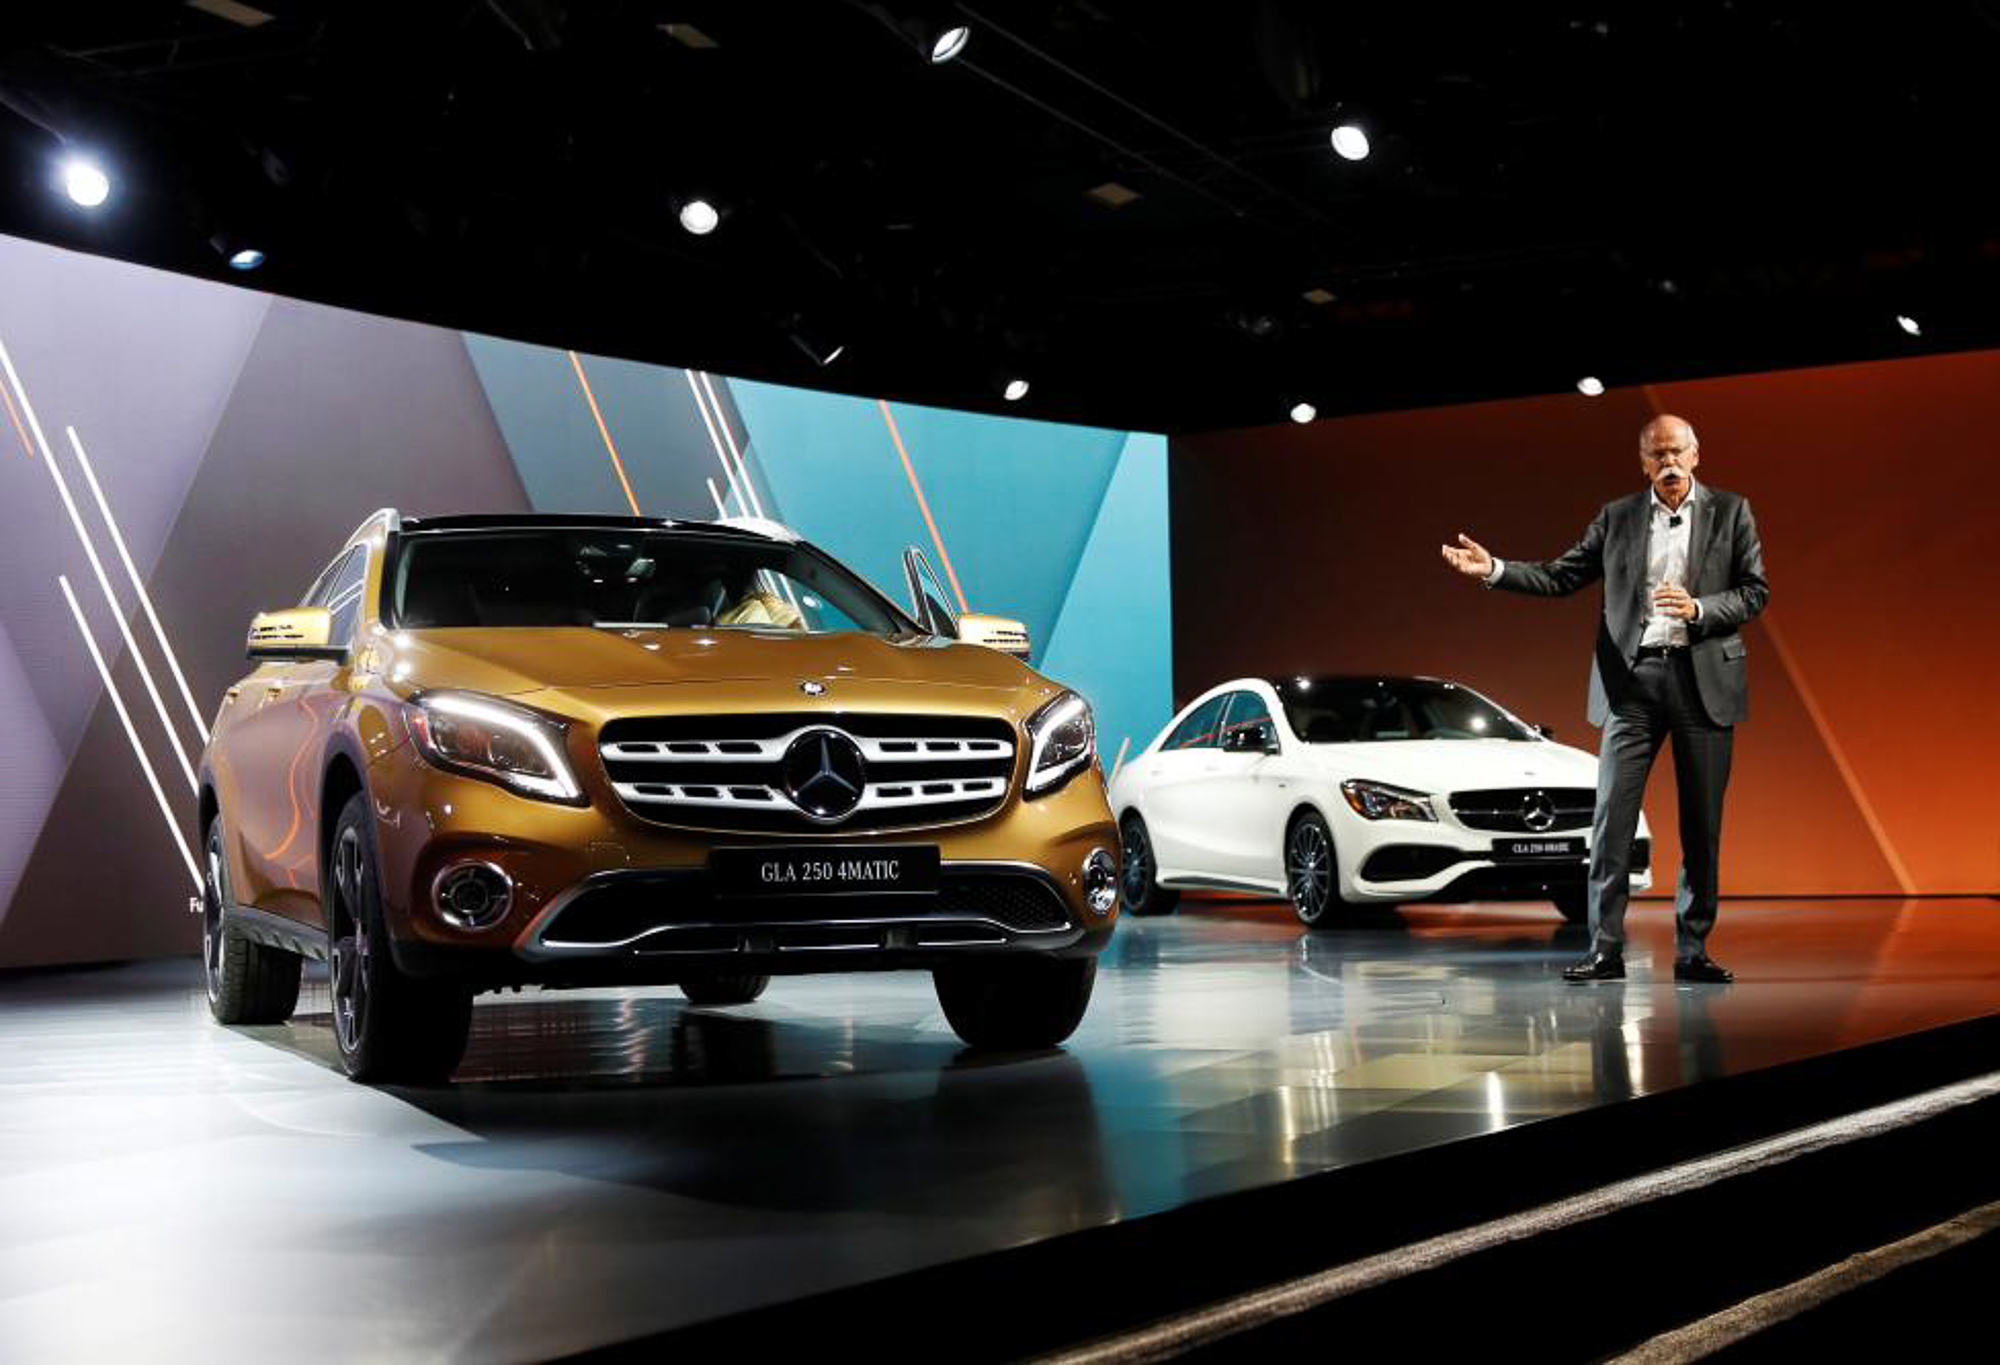 Chairman of the Board of Directors of Daimler AG Dieter Zetsche speaks in front of the revealed Mercedes-Benz GLA 250. PHOTO: REUTERS